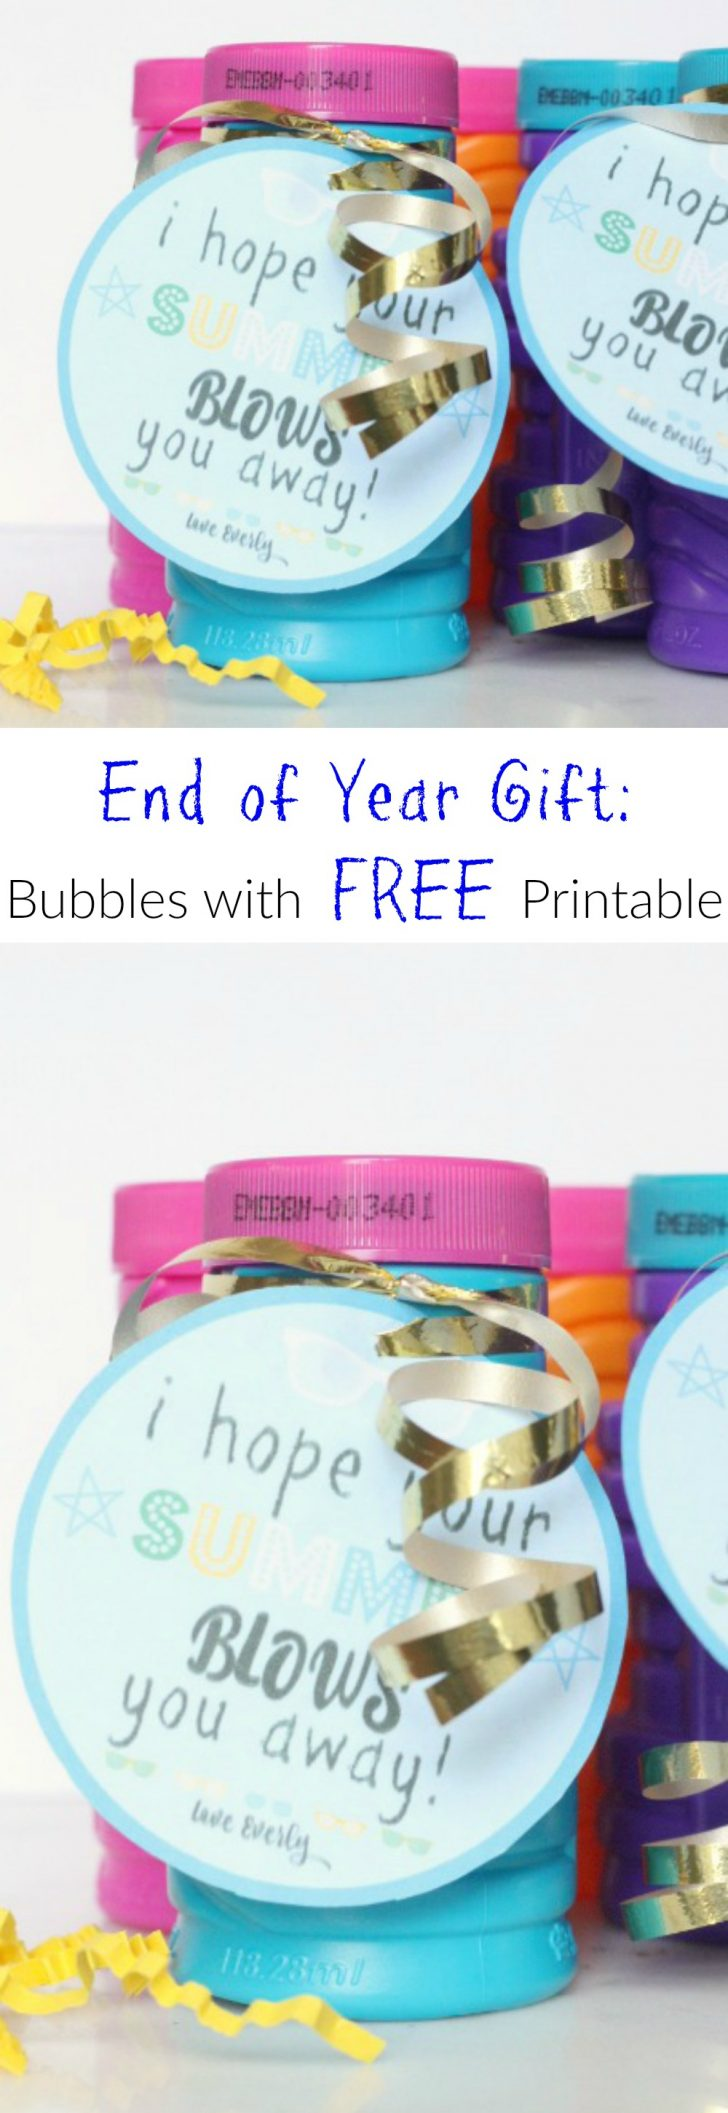 Free Printable Gift Tags For Bubbles